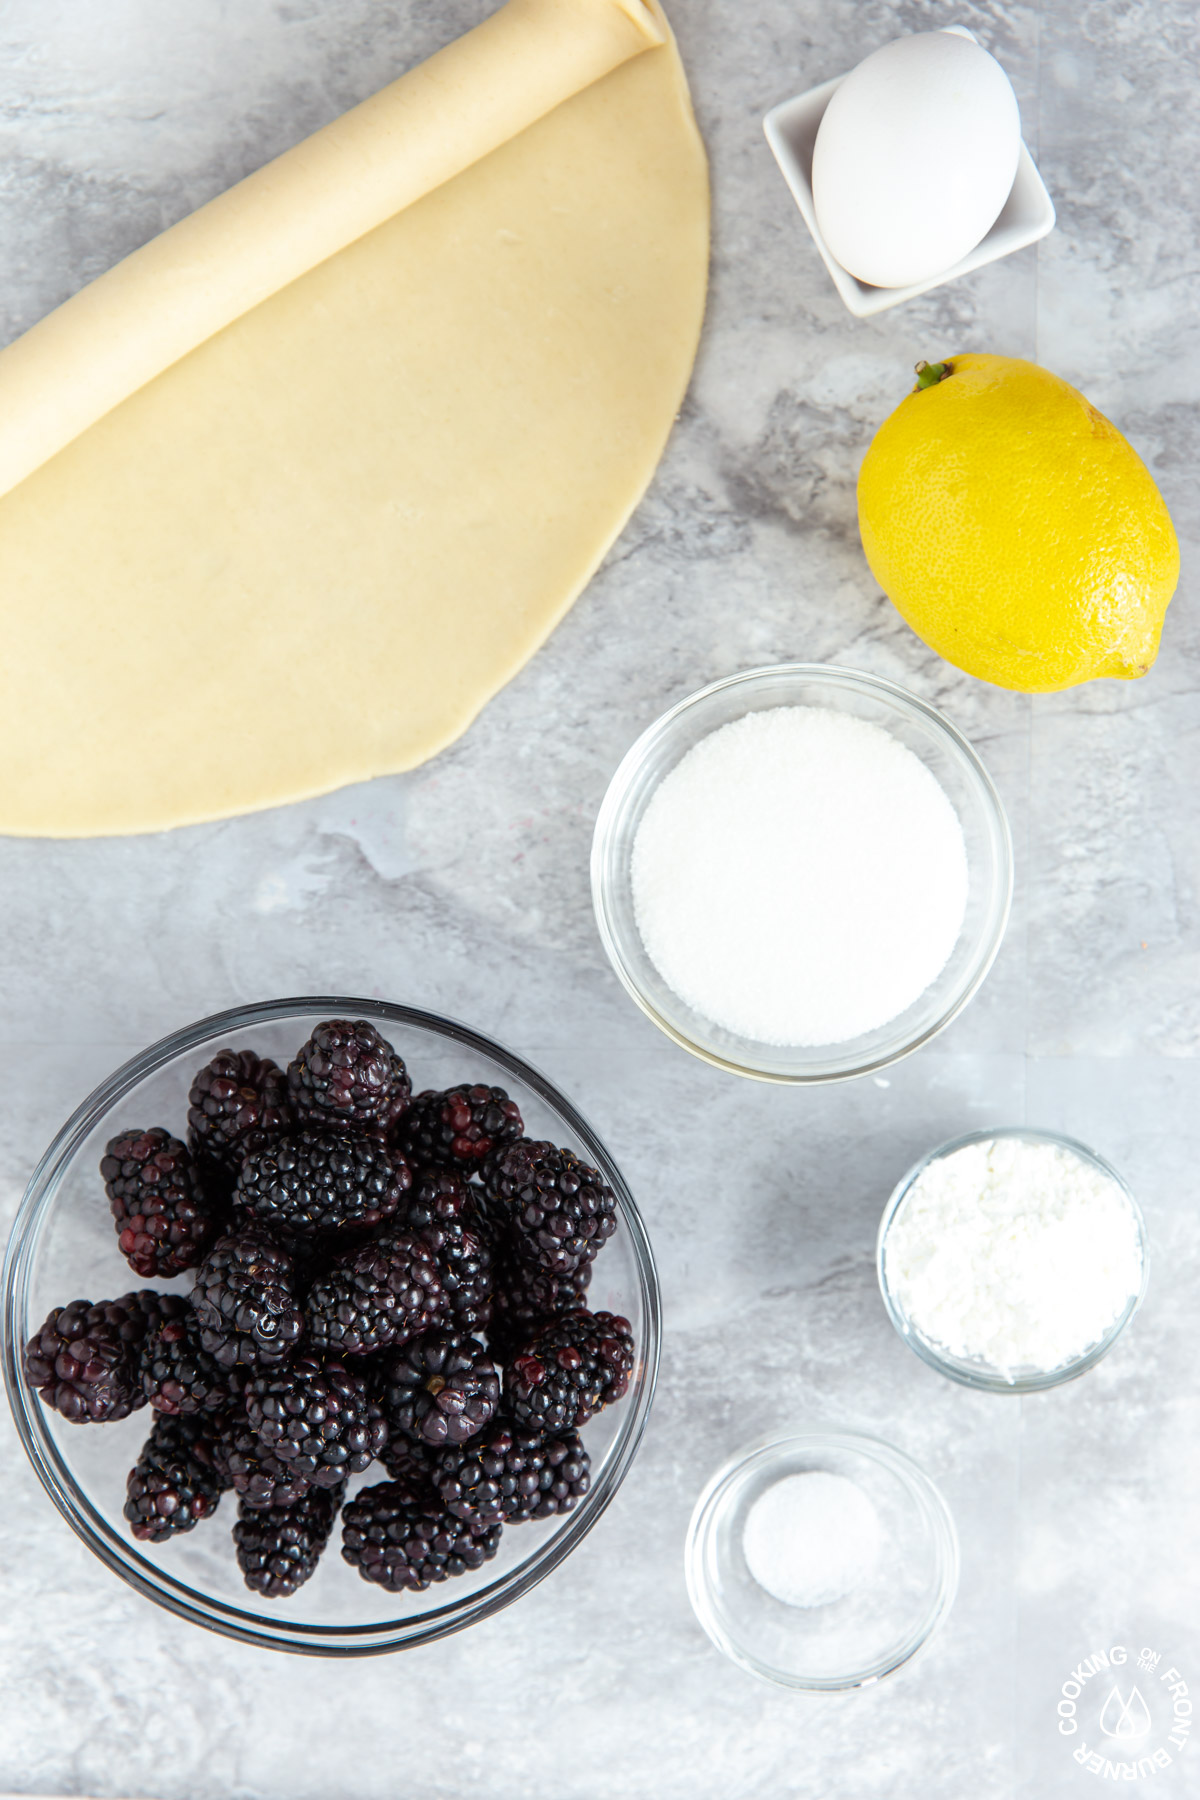 unbaked pie crust, sugar, cornstarch, salt, a lemon and fresh blackberries on a board